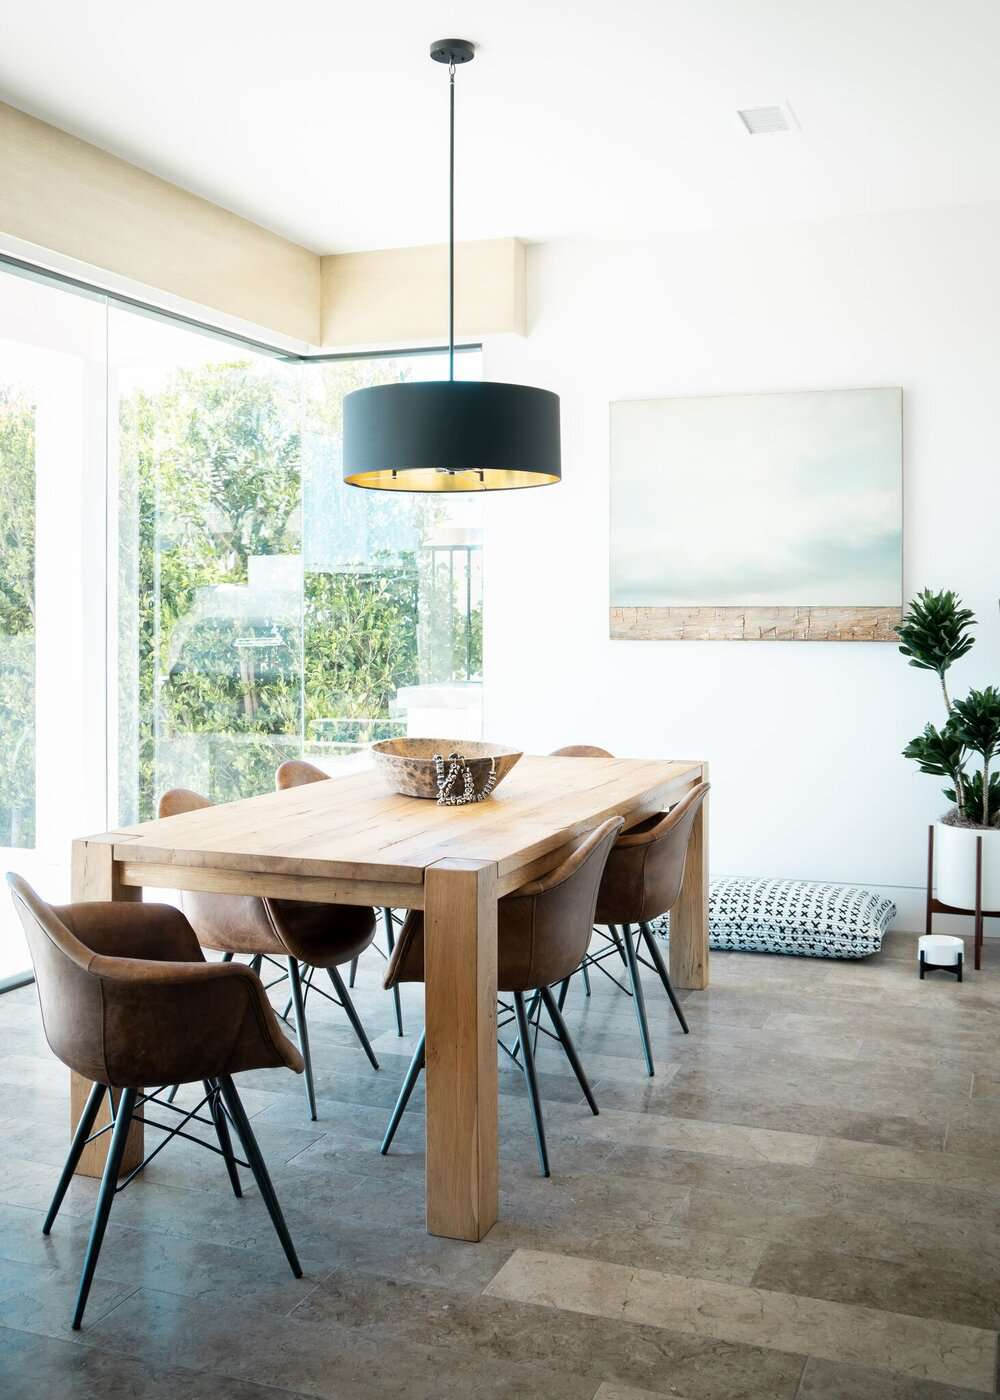 Dining room with wooden coffee table.